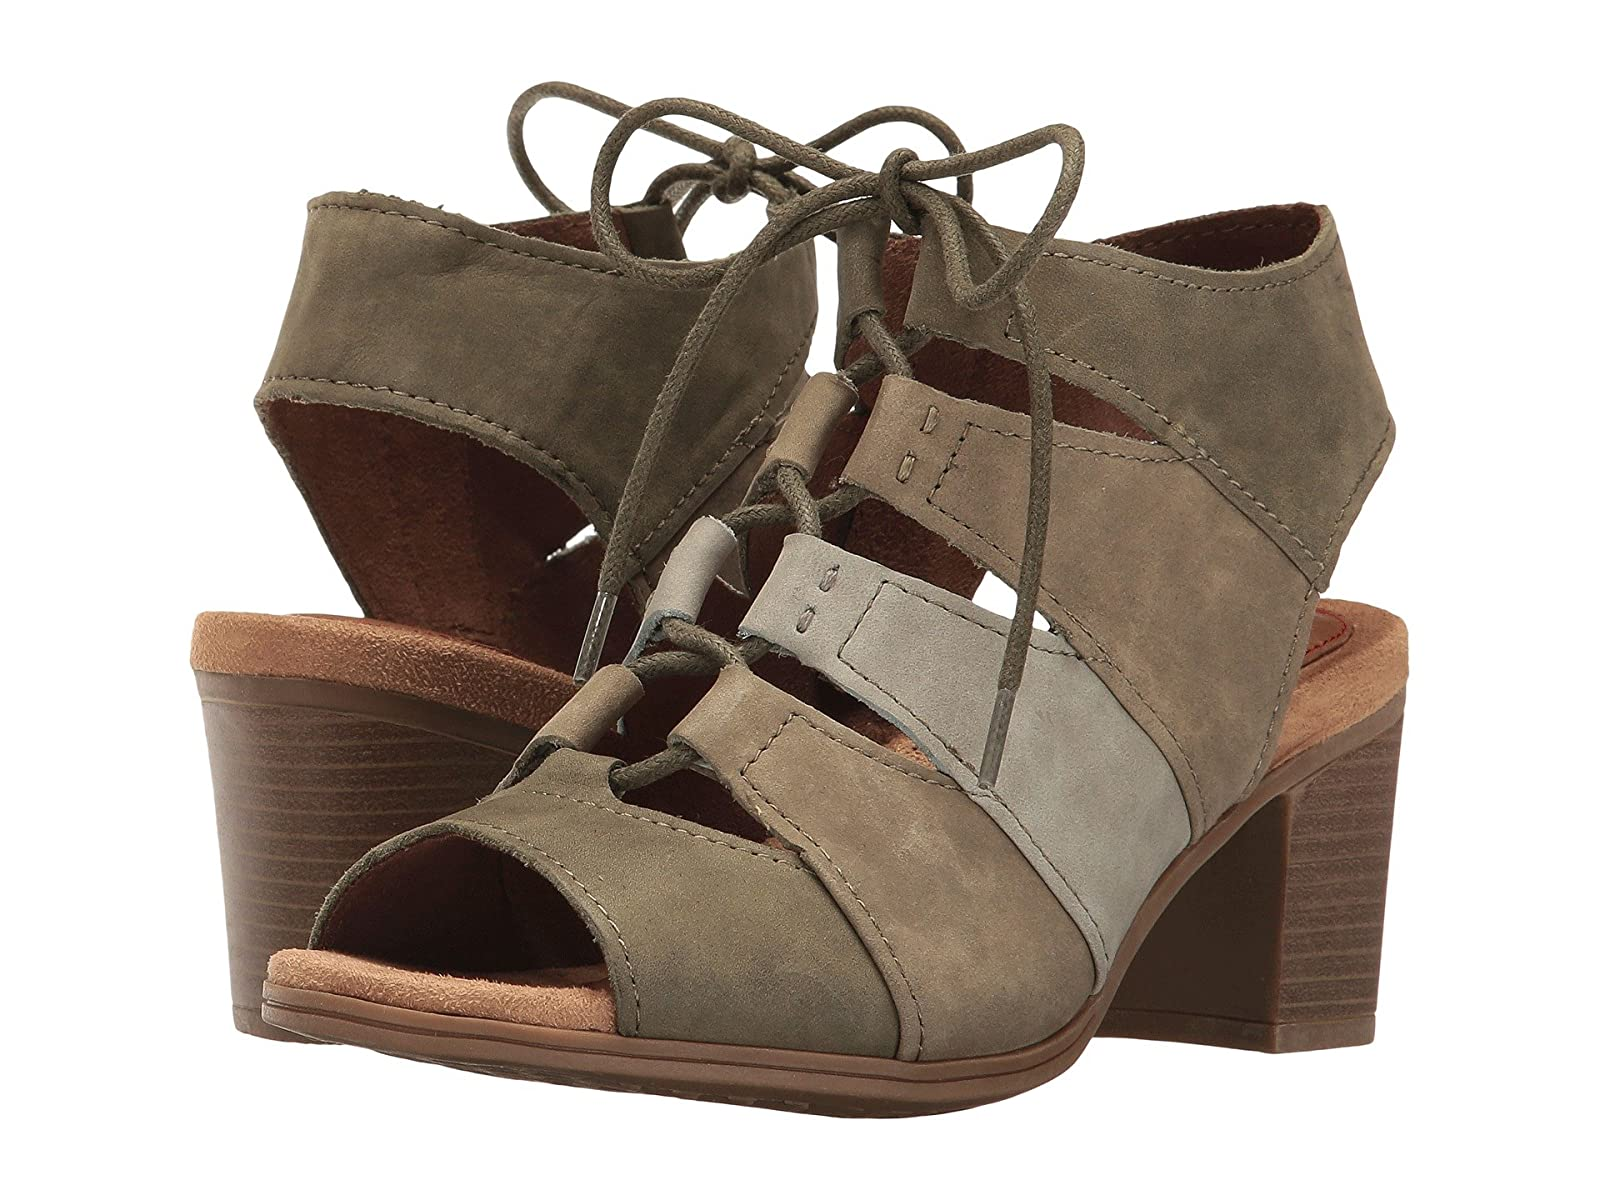 Rockport Cobb Hill Collection Cobb Hill Hattie Lace-Up SandalCheap and distinctive eye-catching shoes